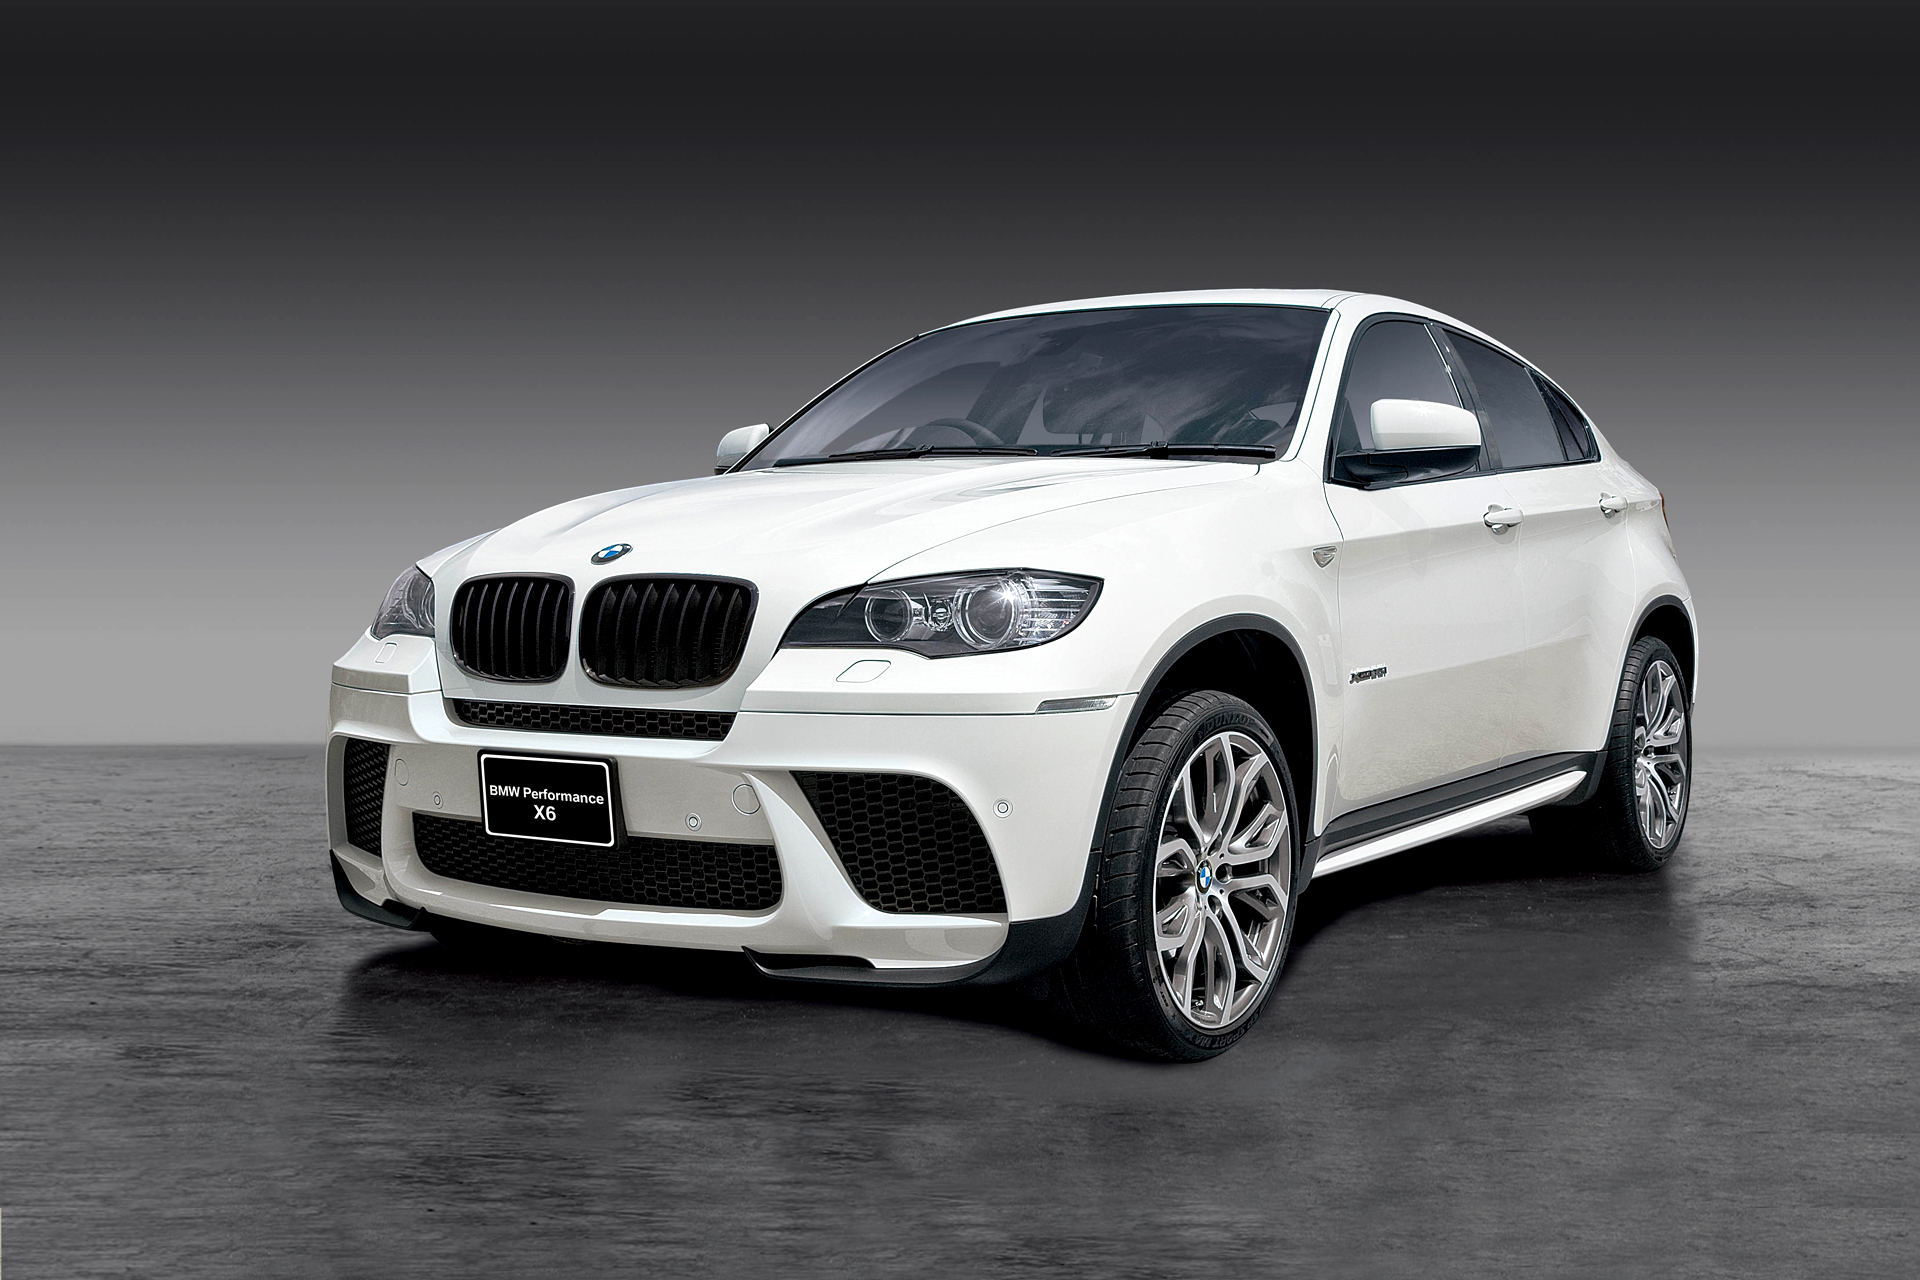 More photos wallpapers of the bmw performance aero parts for the bmw x5 and x6